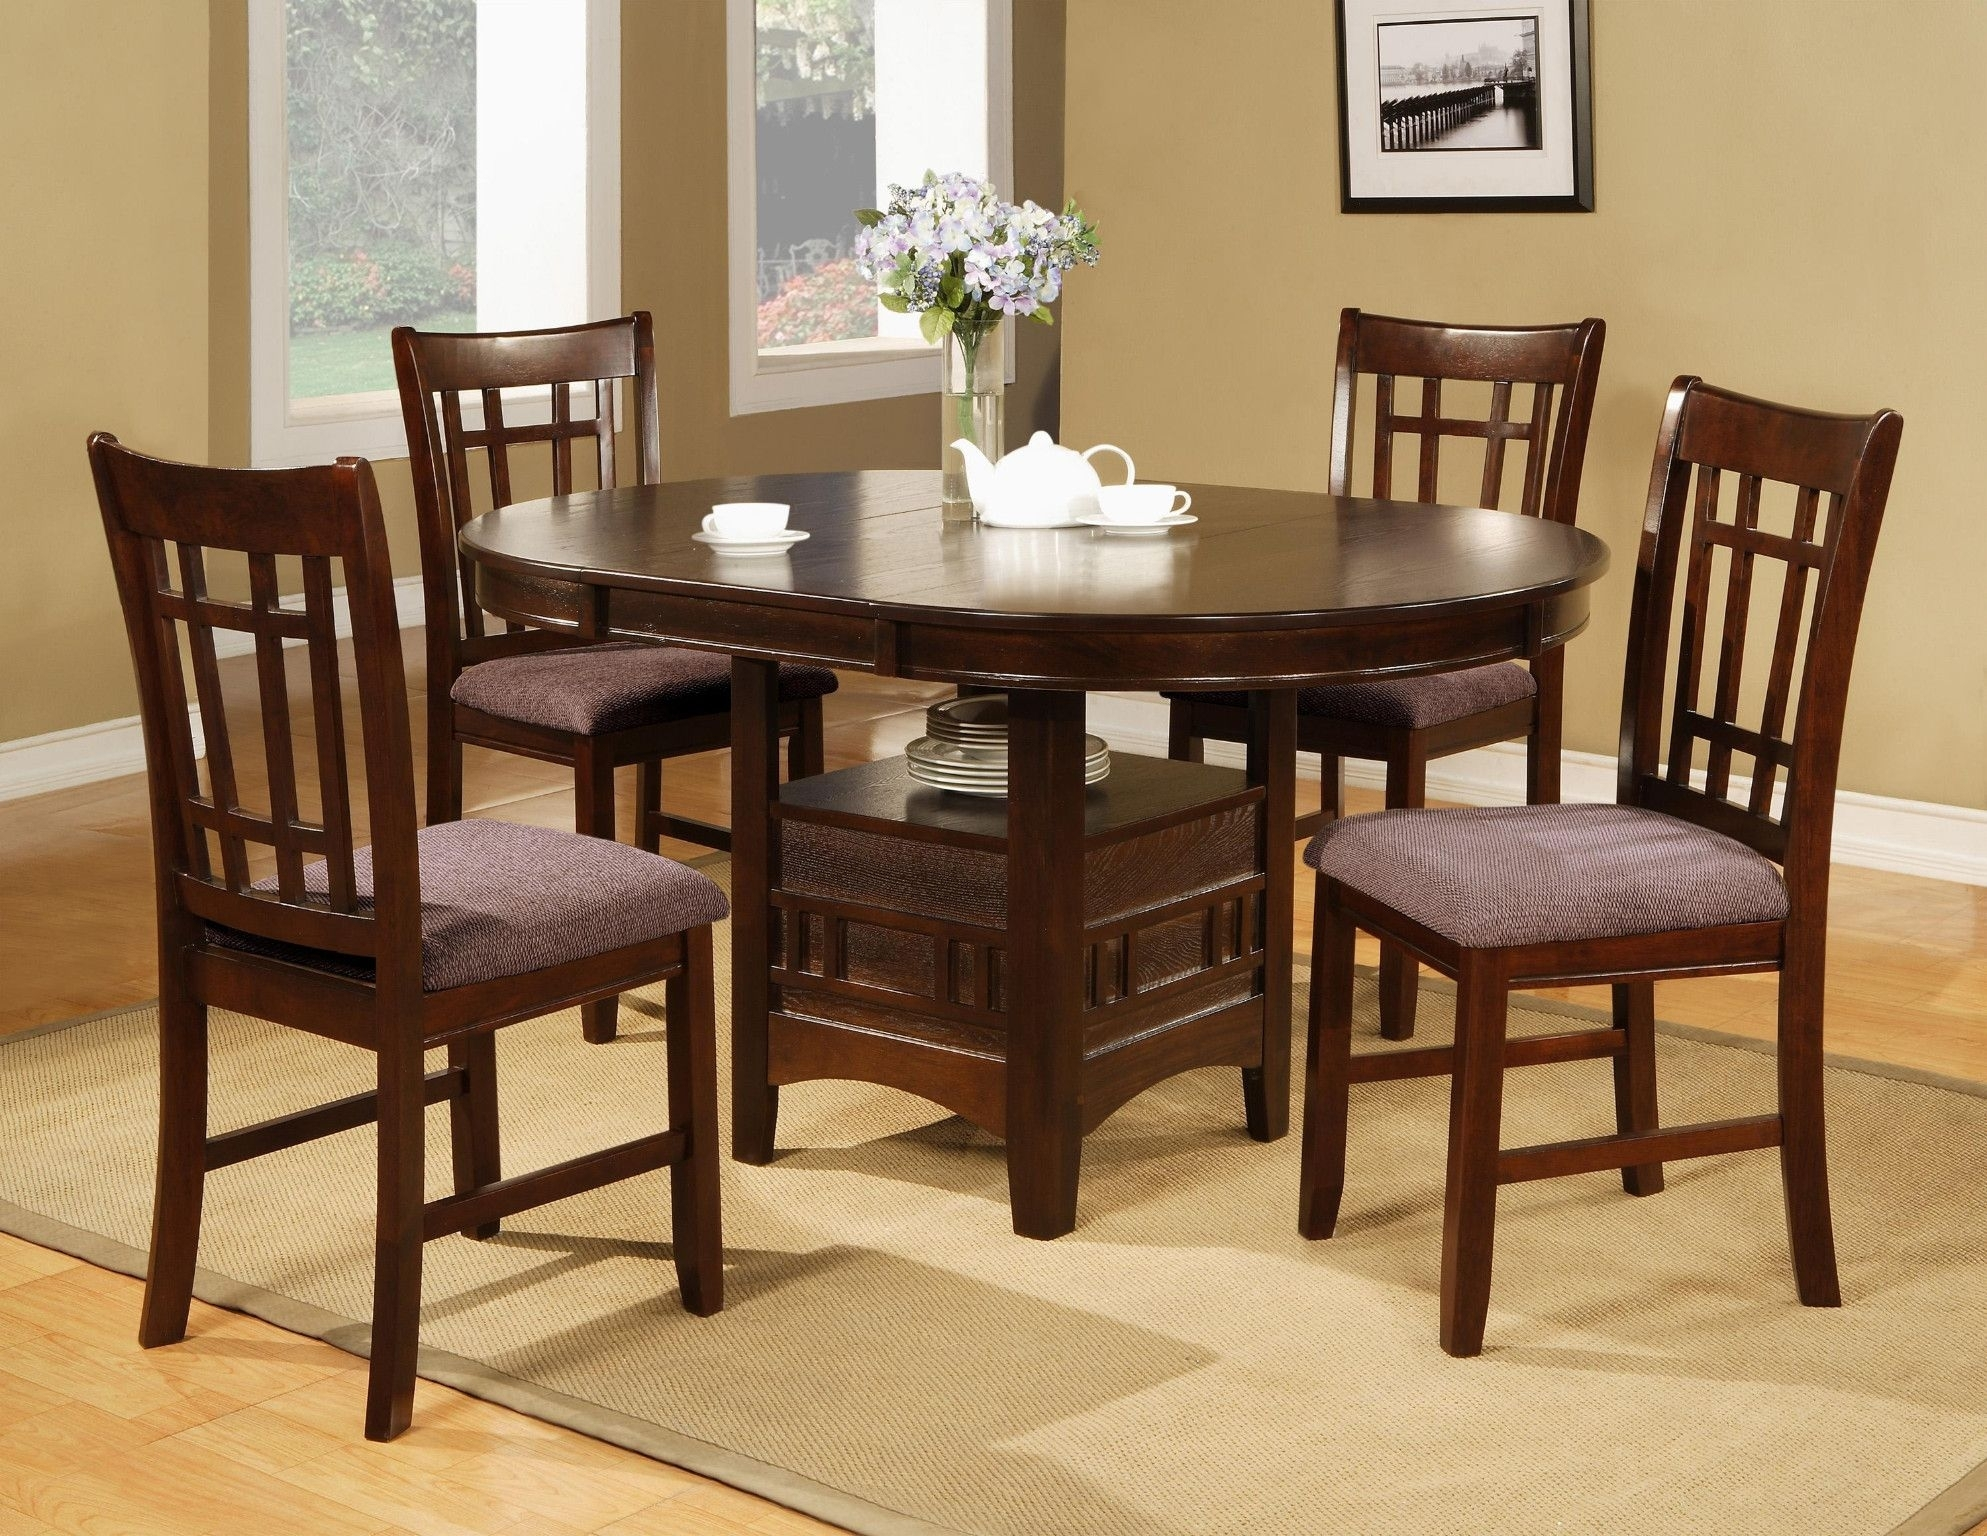 Empire 5 Piece Dinette Table And 4 Chairs $568.00 Table $349.00 42 Inside Best And Newest Craftsman 5 Piece Round Dining Sets With Uph Side Chairs (Photo 8 of 20)